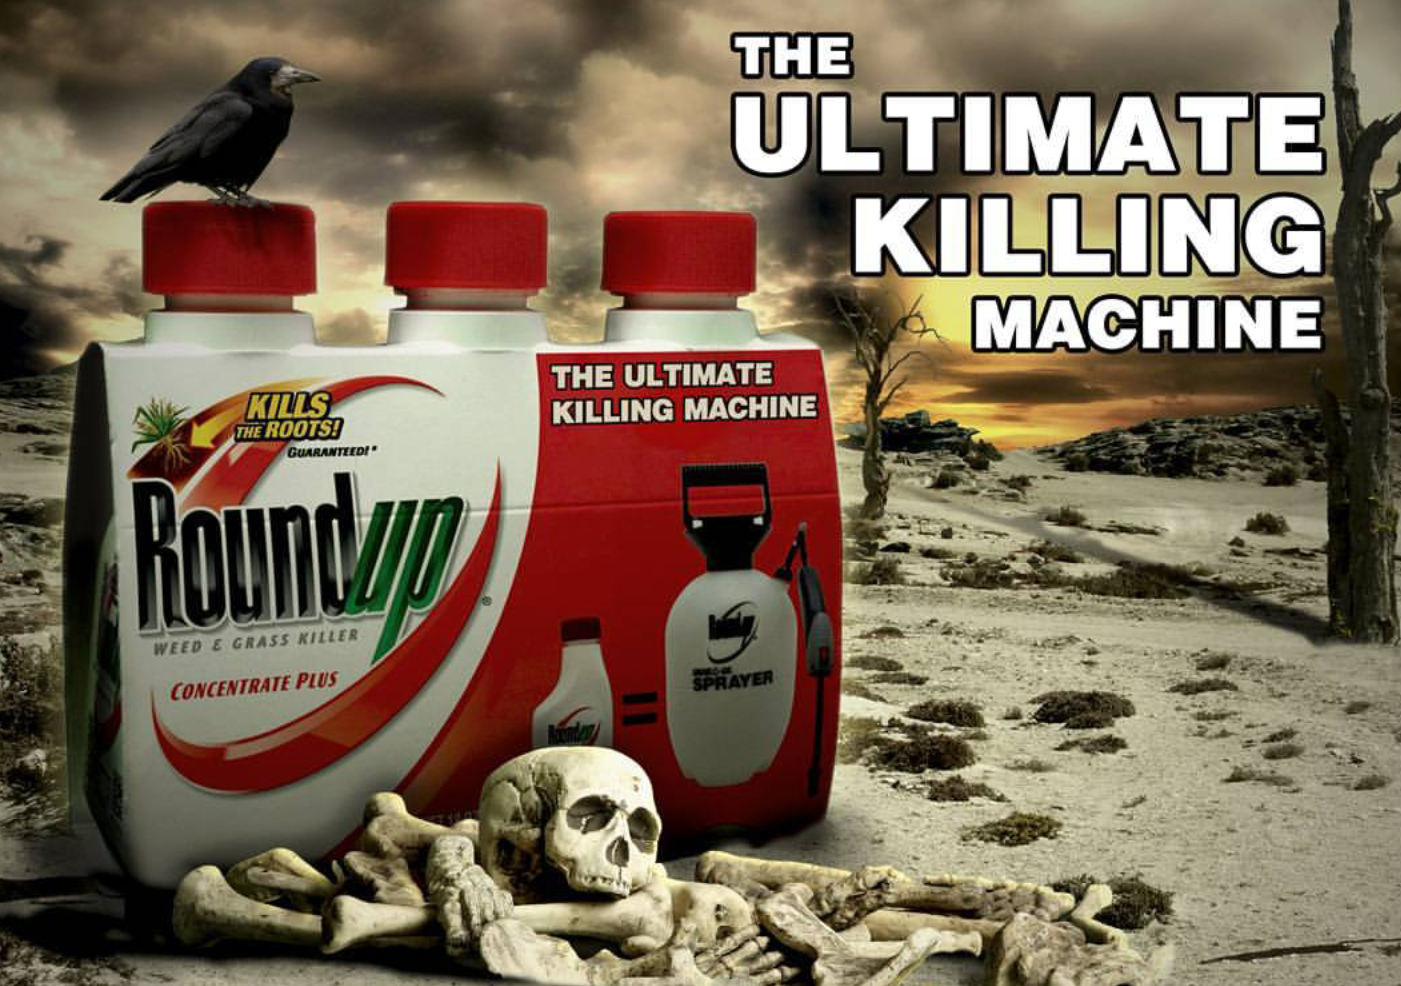 What S Today In The News Glyphosate Europe Monsanto For Your Health Health